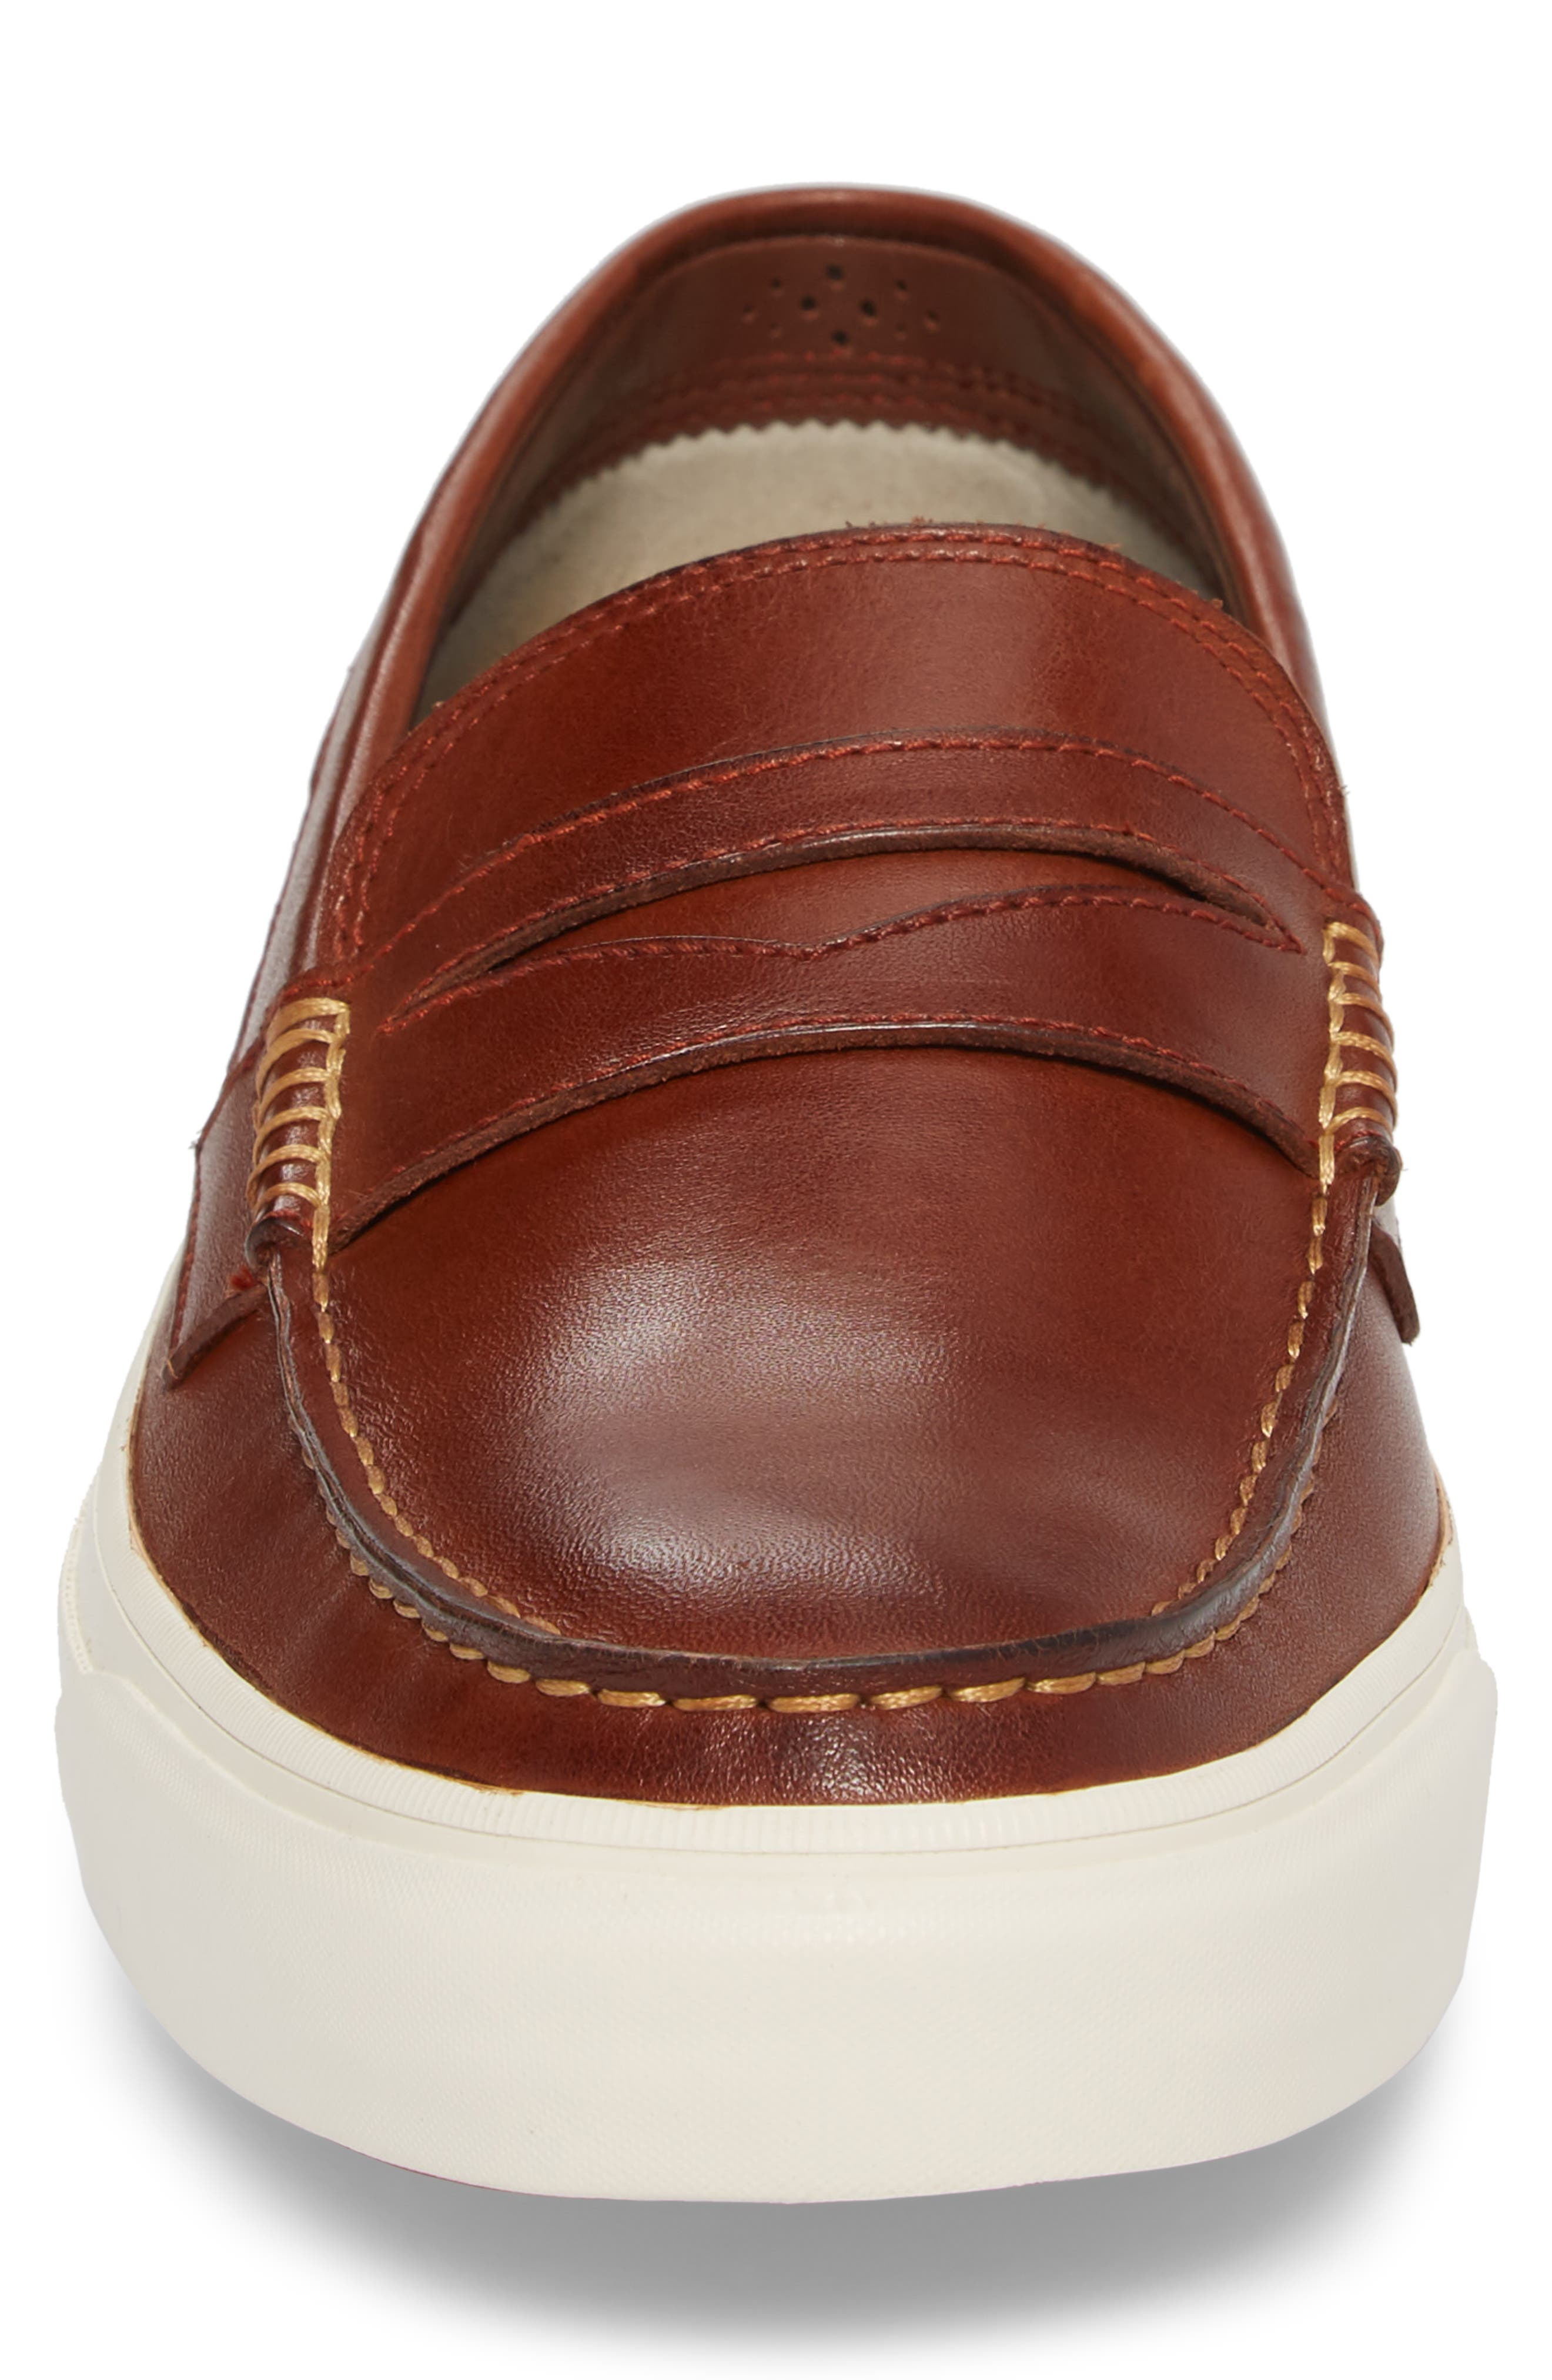 Pinch Weekend LX Penny Loafer,                             Alternate thumbnail 34, color,